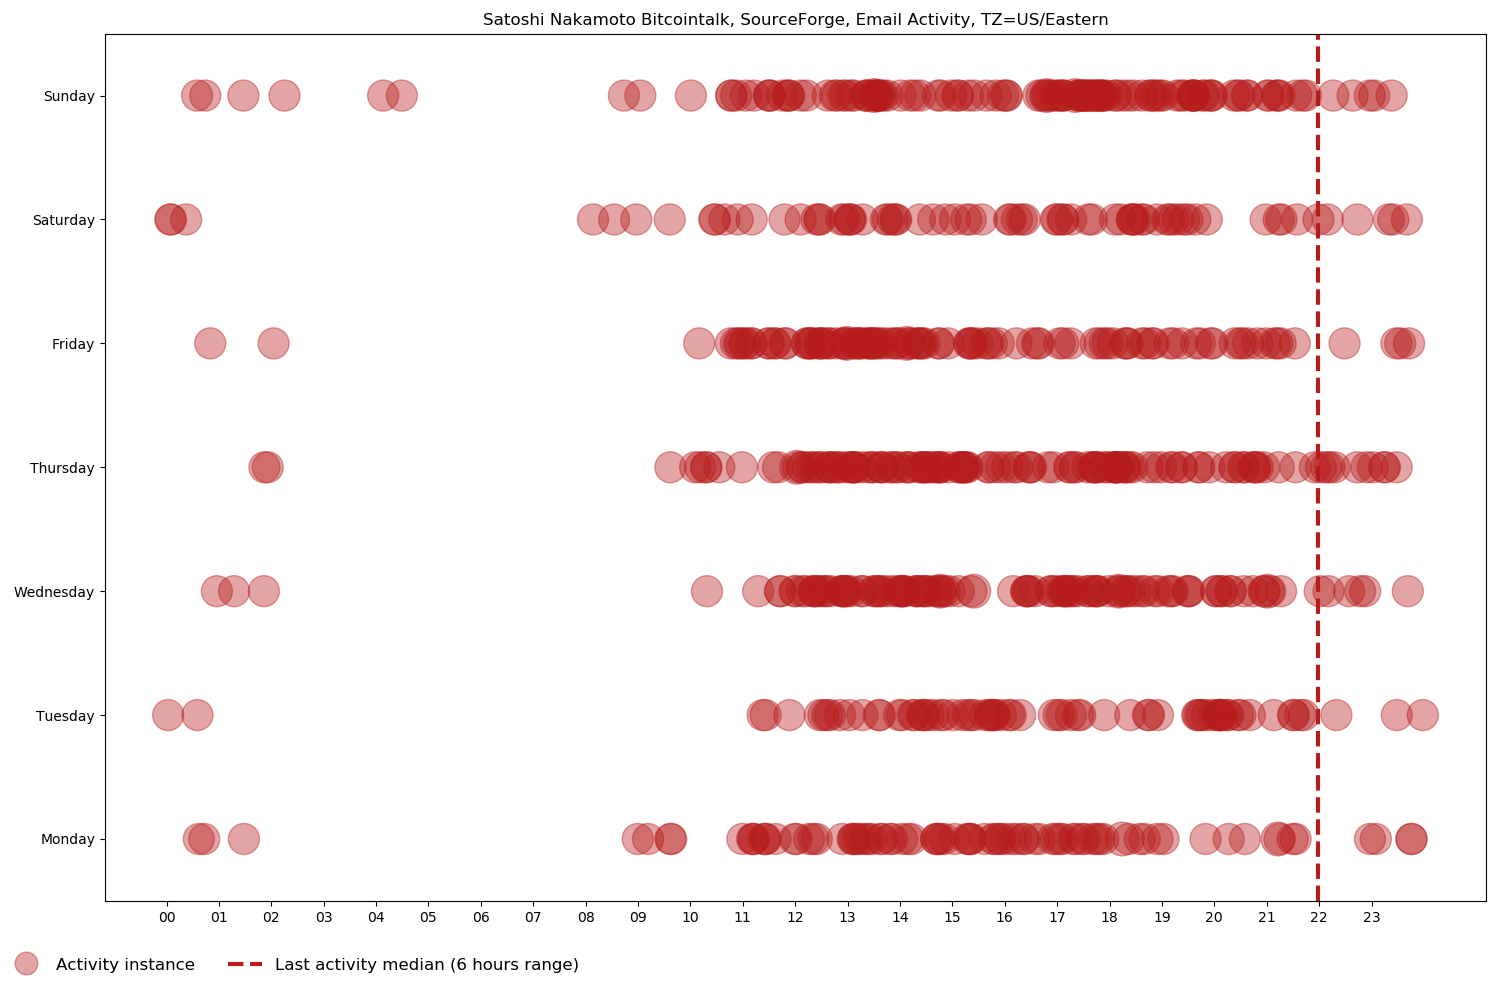 Scatter chart of Satoshi Nakamoto's Bitcointalk, SourceForge, and email activity, from the first one on October 31, 2008 to the last one on December 13, 2010, based on day of the week and time of day in the US/Eastern time zone.